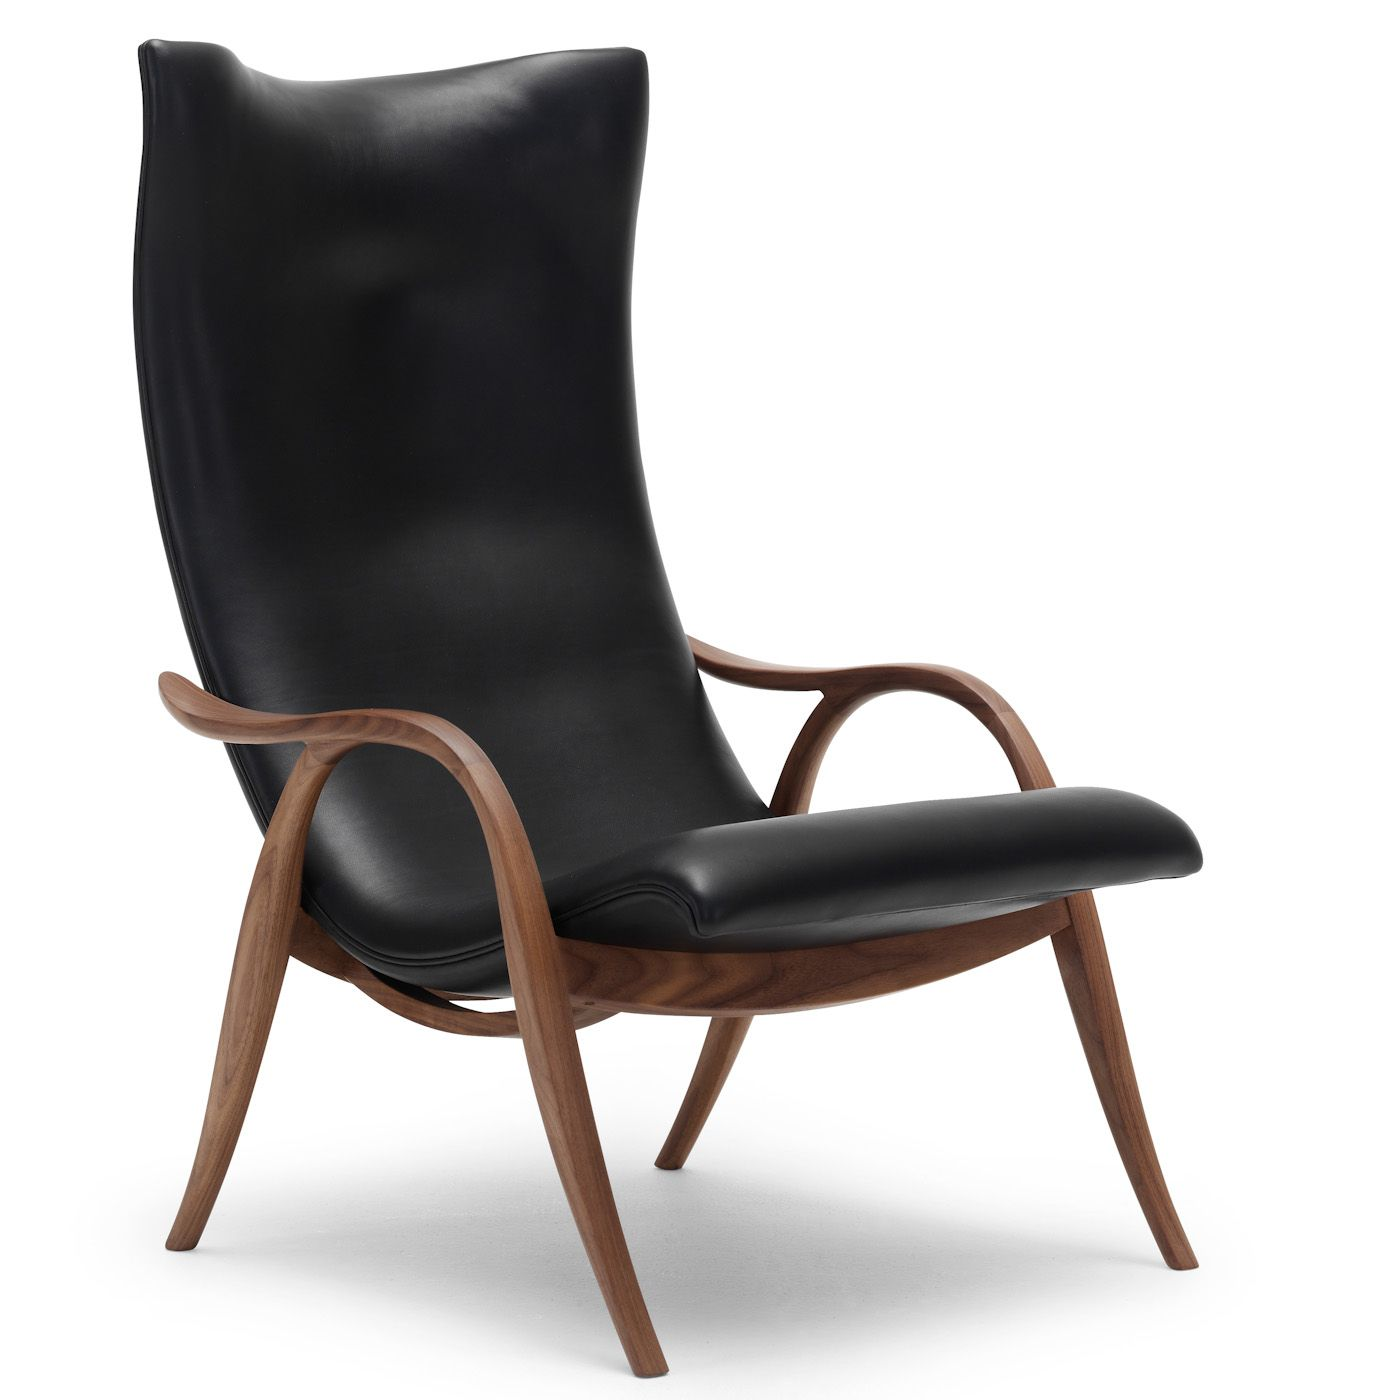 FH429 Signature Lounge Chair